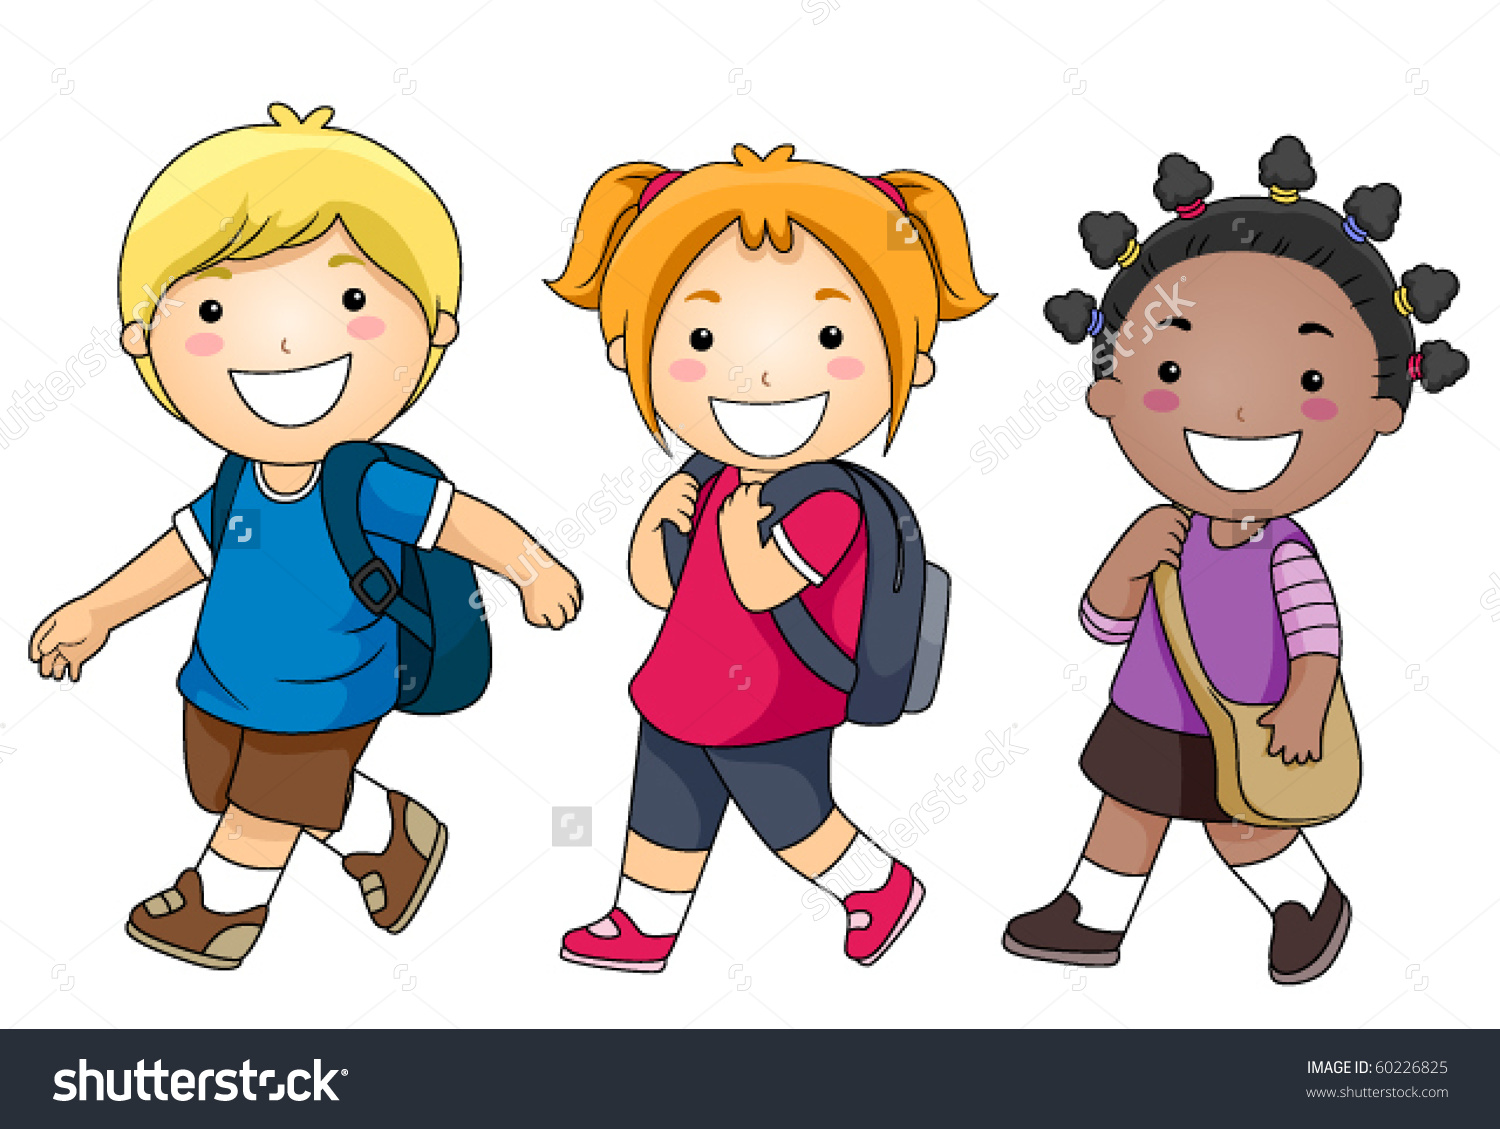 School clipart with kids clipart freeuse Group of kids at school clipart - ClipartFest clipart freeuse